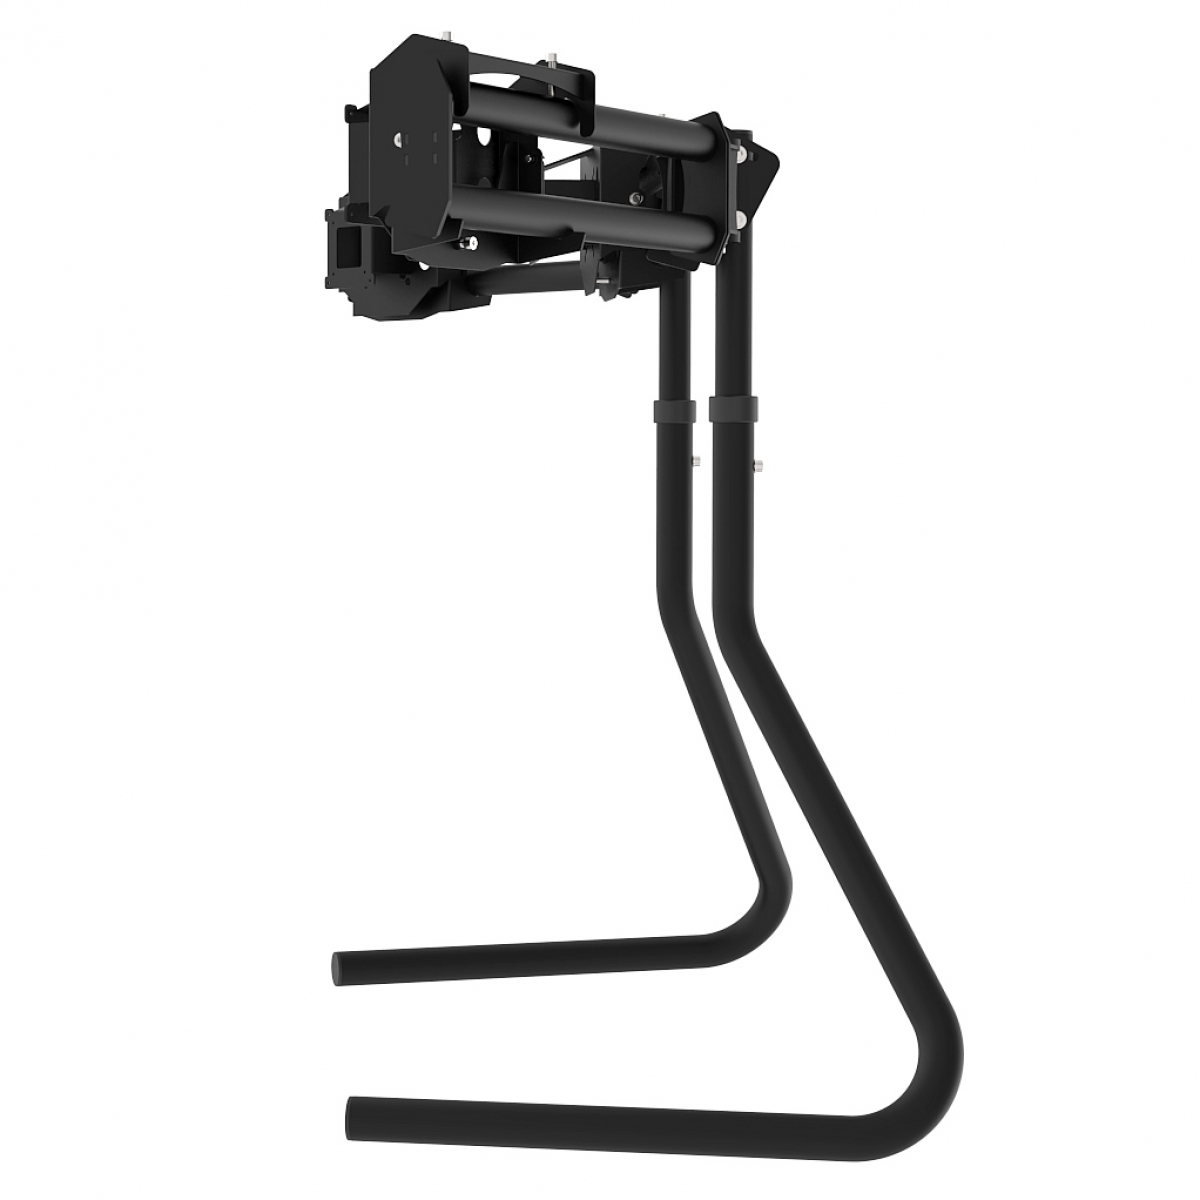 RS STAND T3LM Black - Triple Ultra Wide Monitor Stand up to 3x29inch 21:9, up to 3x32inch 16:9